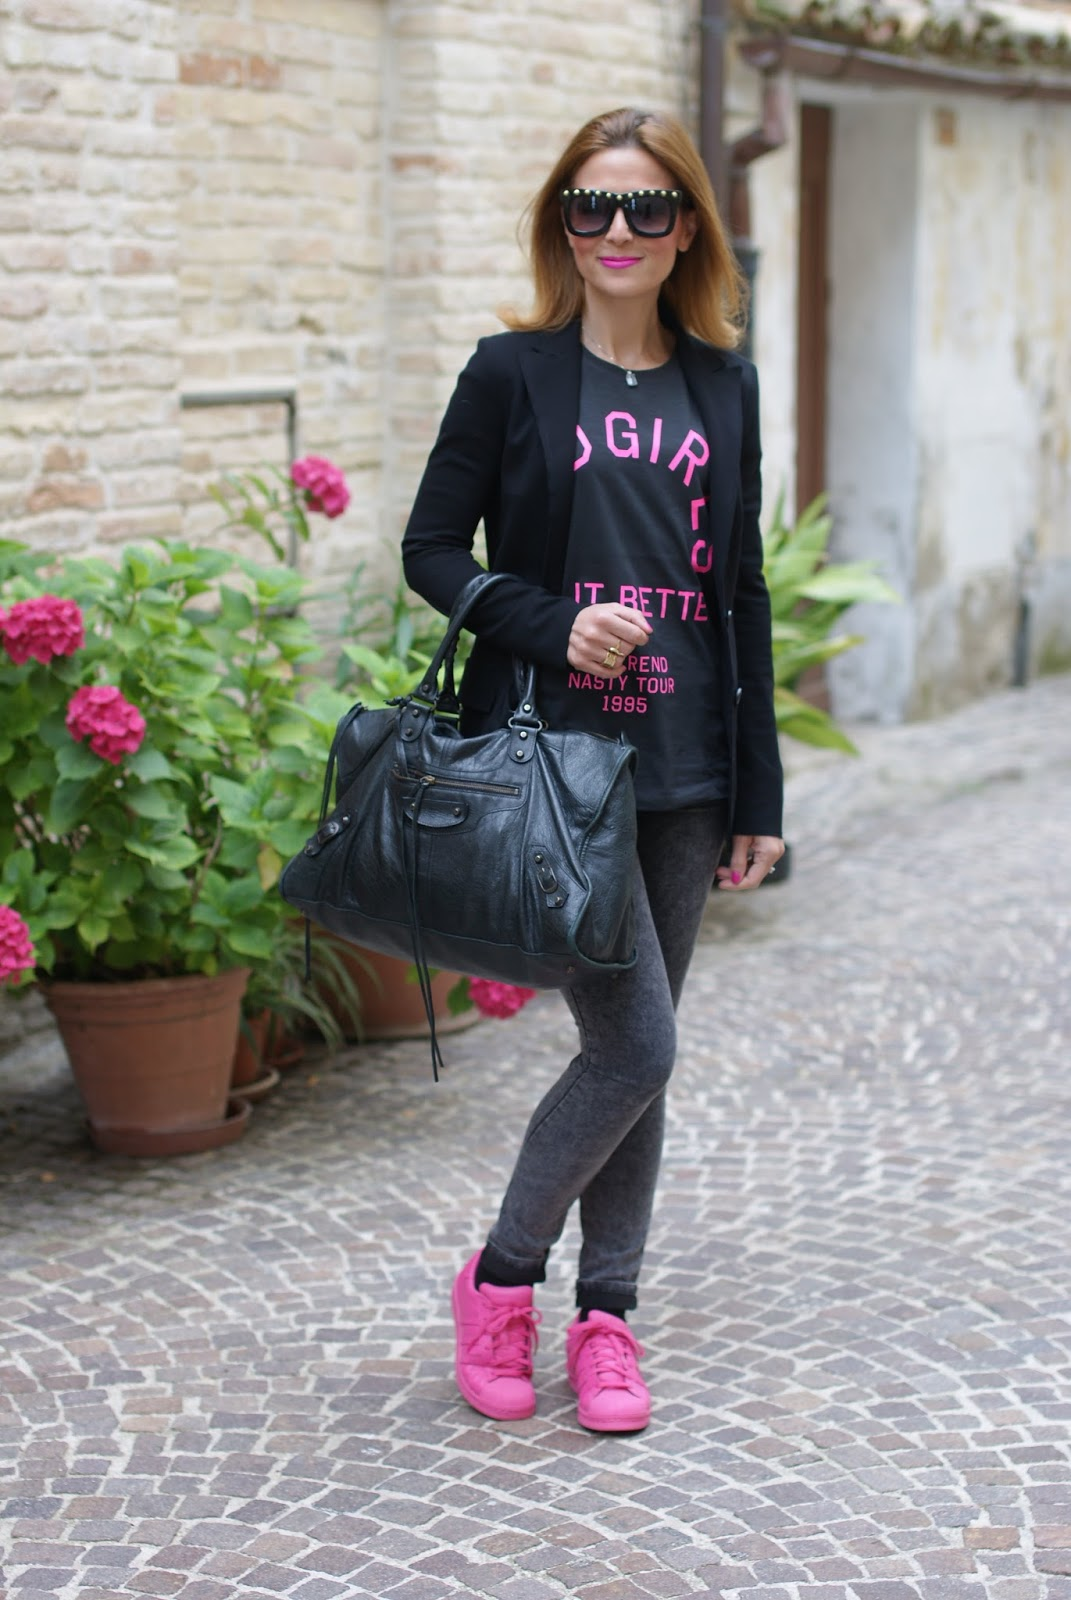 adidas supercolor semi solar pink, black Balenciaga work bag, bad girls do it better t-shirt, rock look on Fashion and Cookies fashion blog, fashion blogger style